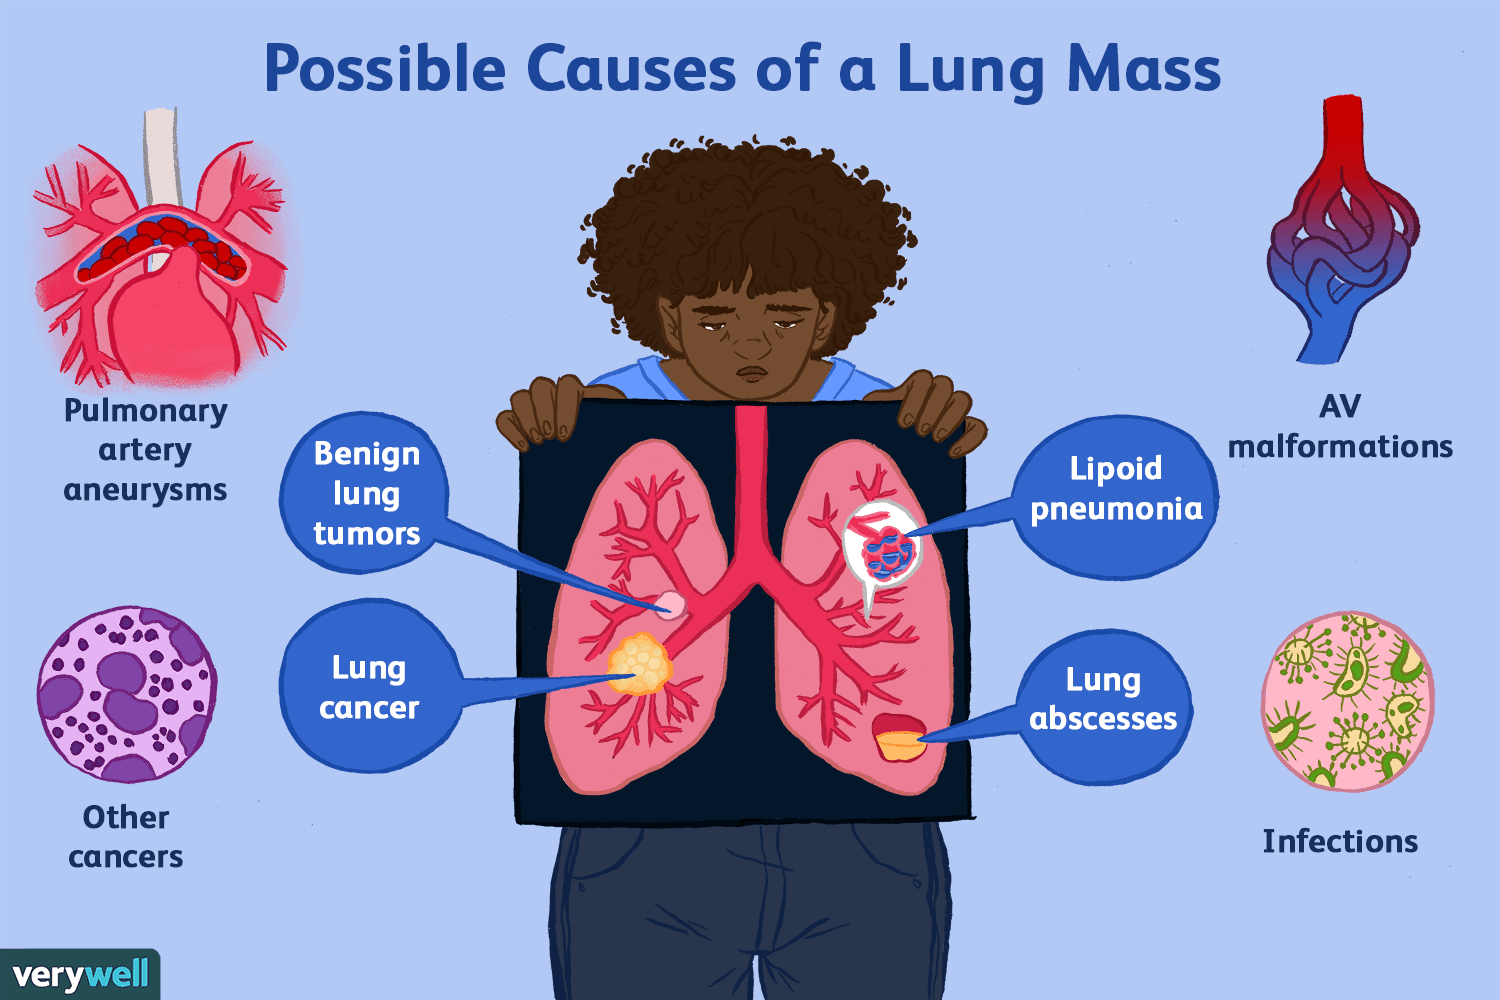 d4f9193087c Possible Causes of a Lung Mass